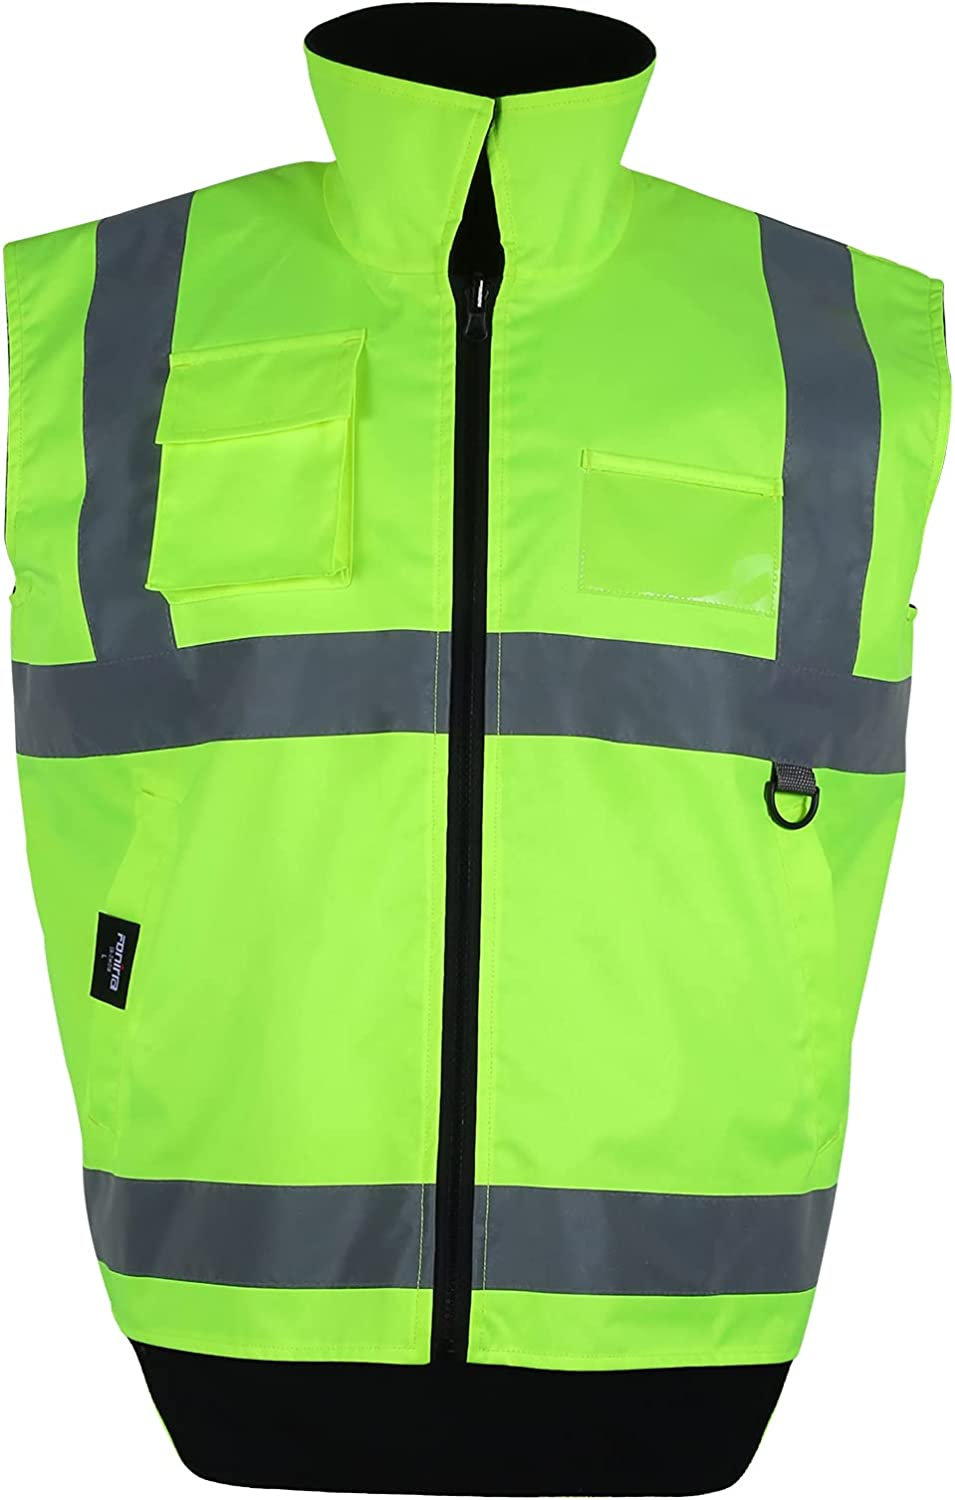 Ranking TOP12 Safety Vest for Men Mesa Mall Double High Sided with Reflective Visibility